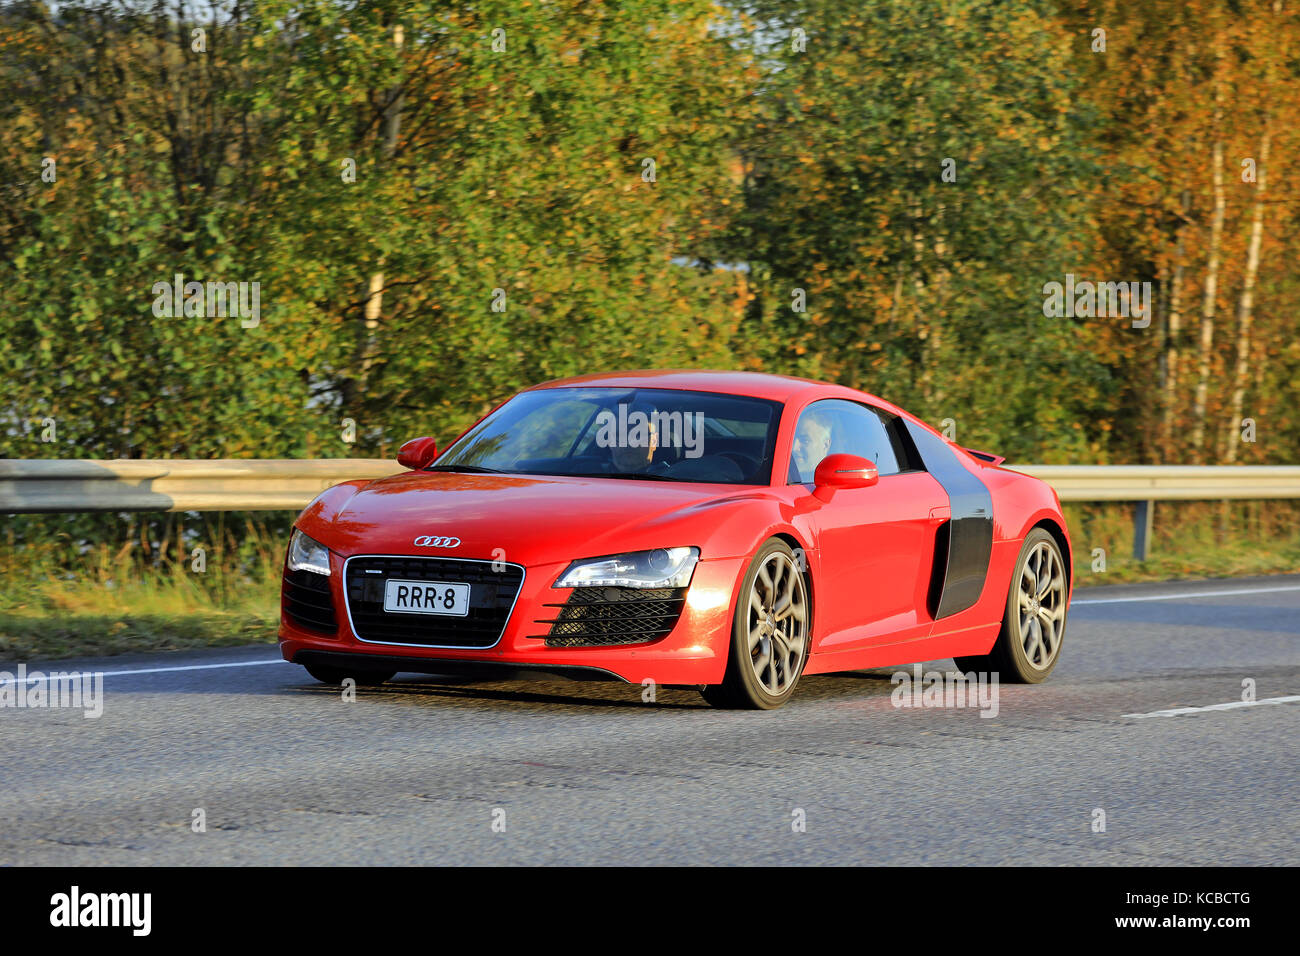 JYVASKYLA, FINLAND - SEPTEMBER 23, 2017: Beautiful Red Audi R8 at speed on highway in autumn. - Stock Image